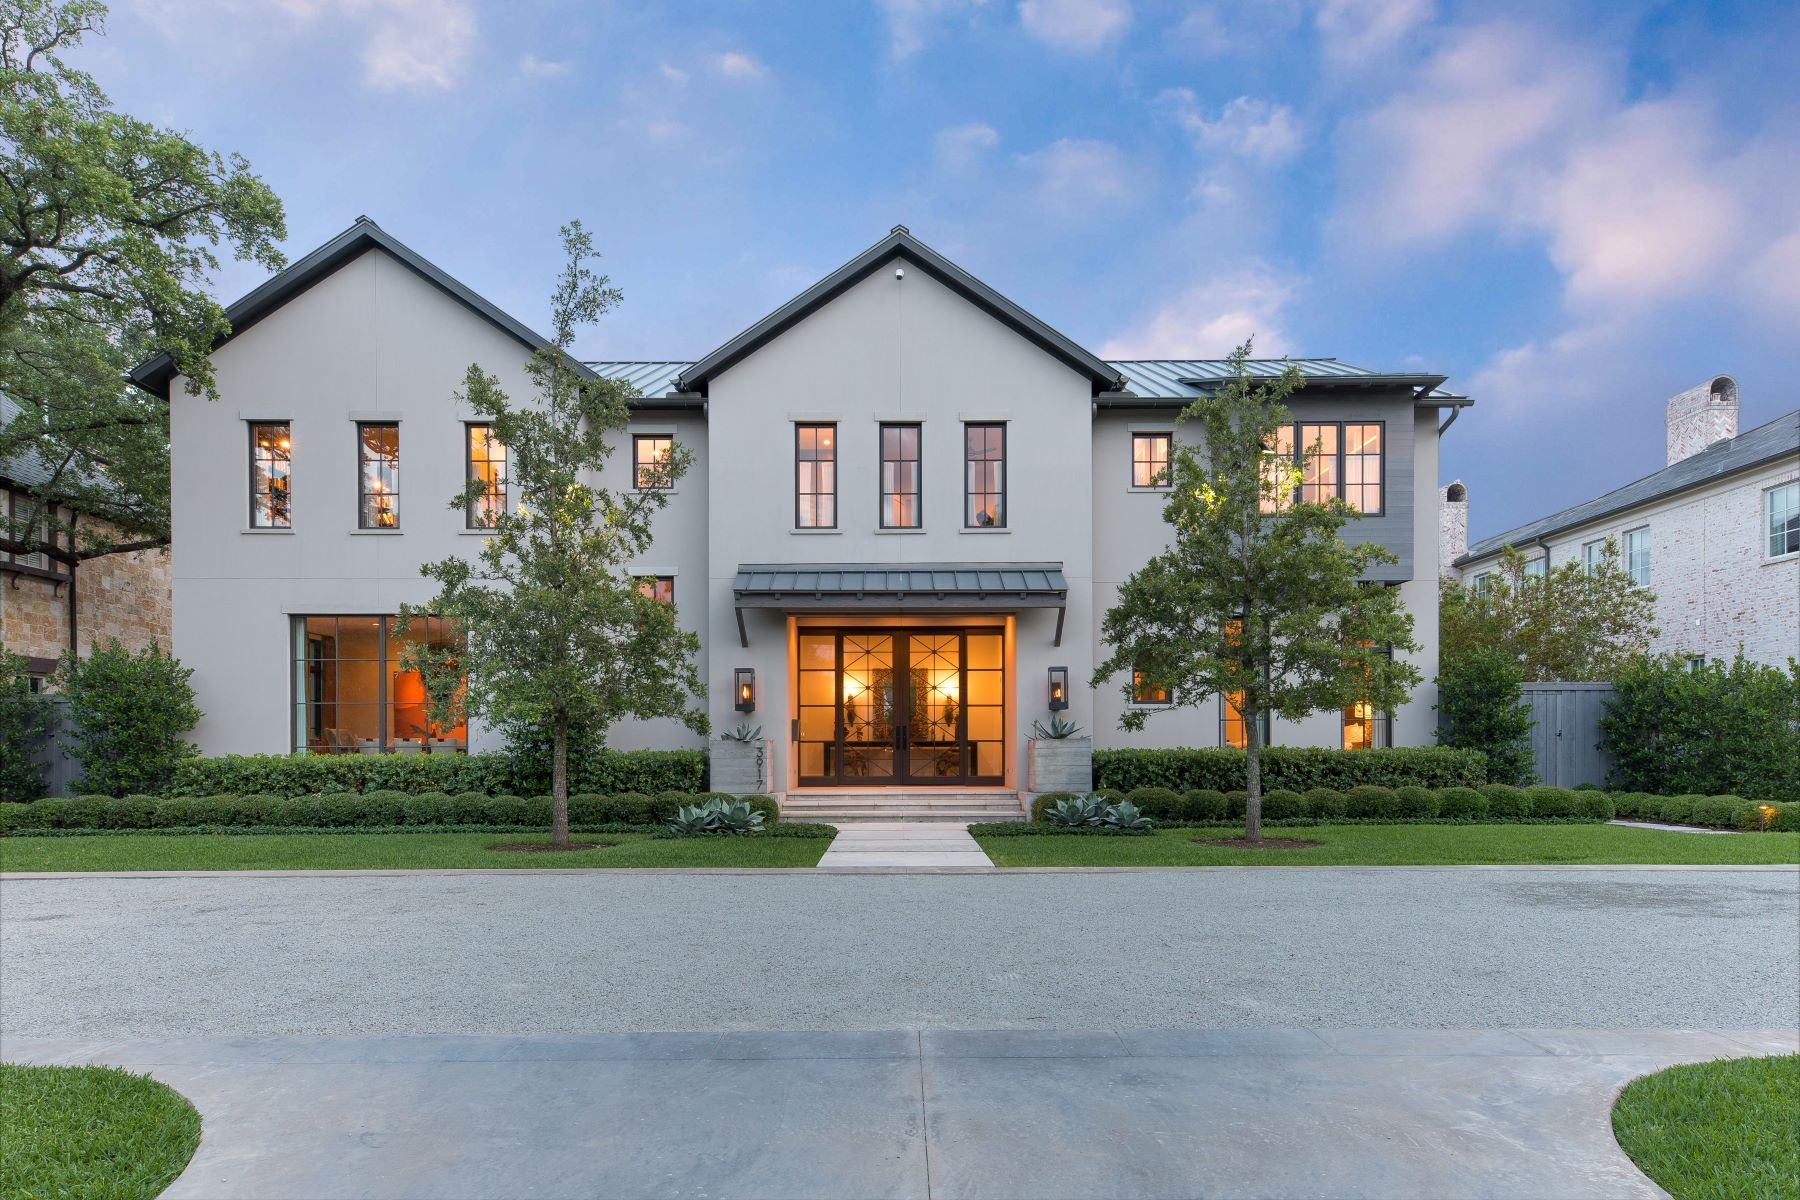 Single Family Homes for Sale at Luxury Living with all the Amenities 3917 Centenary Avenue University Park, Texas 75225 United States